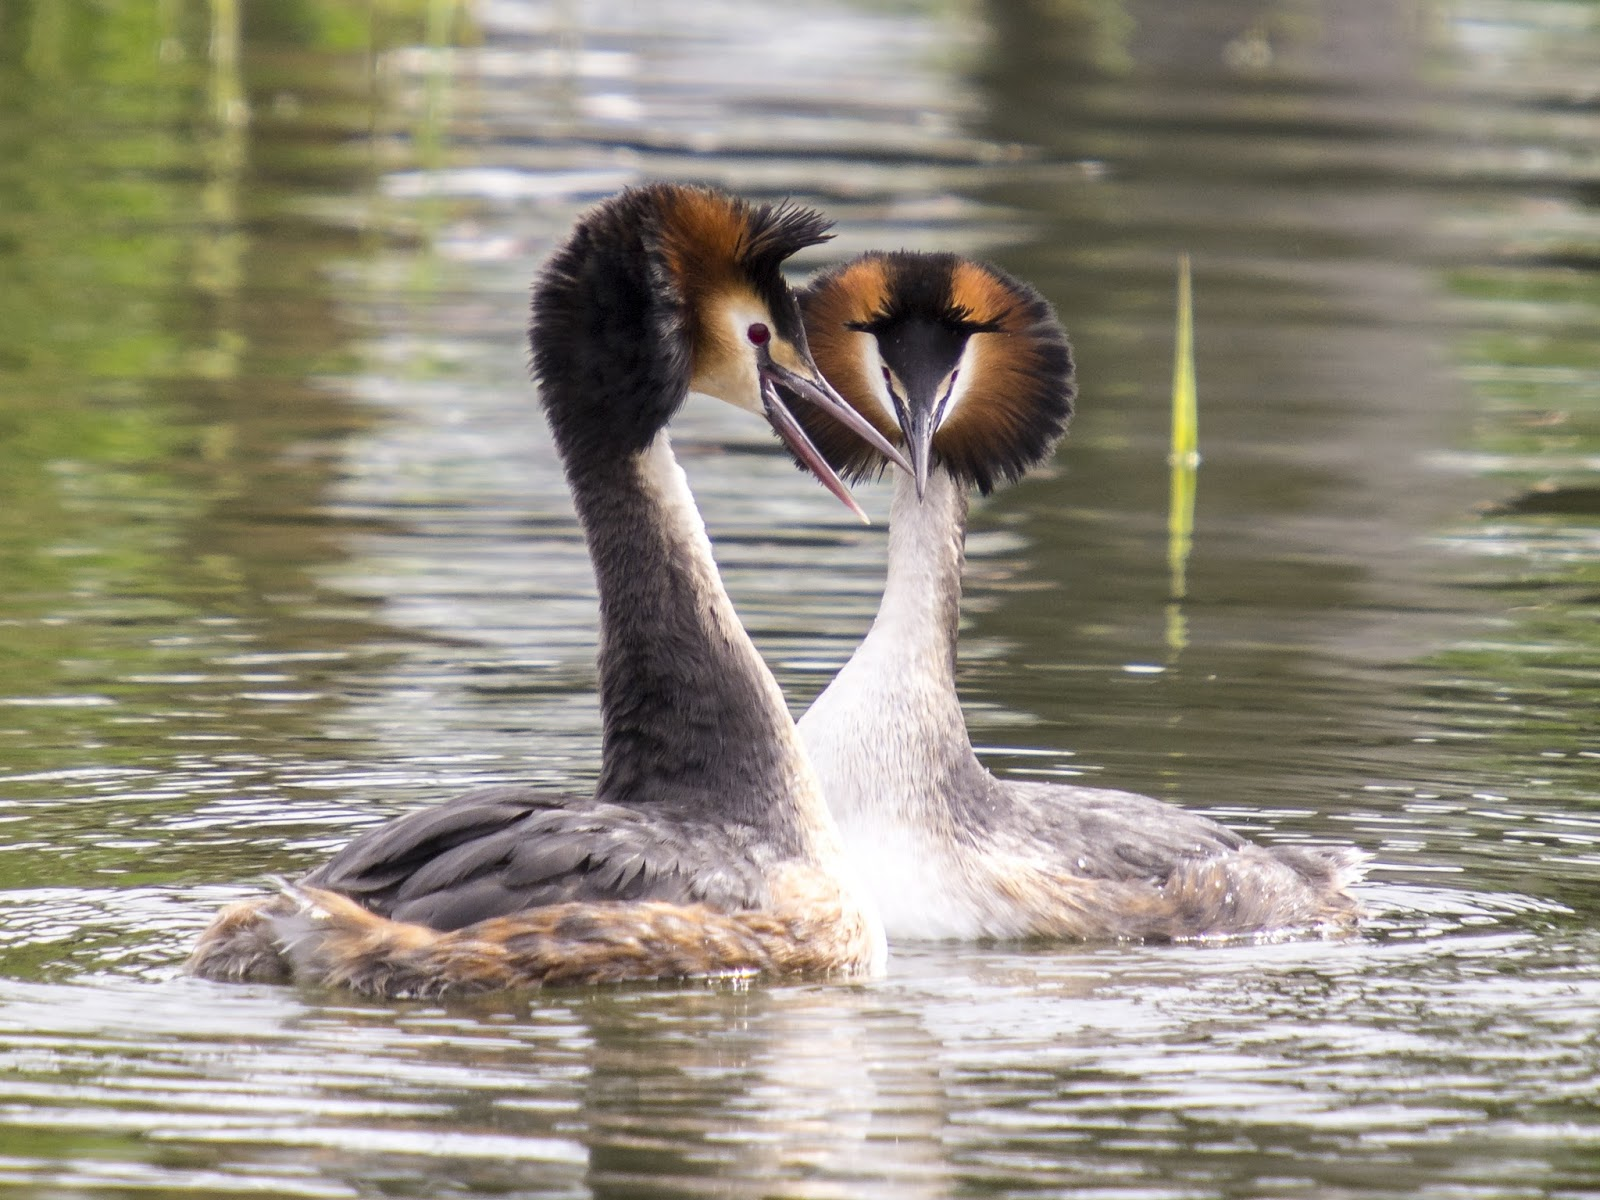 Picture of grebes dancing on water.